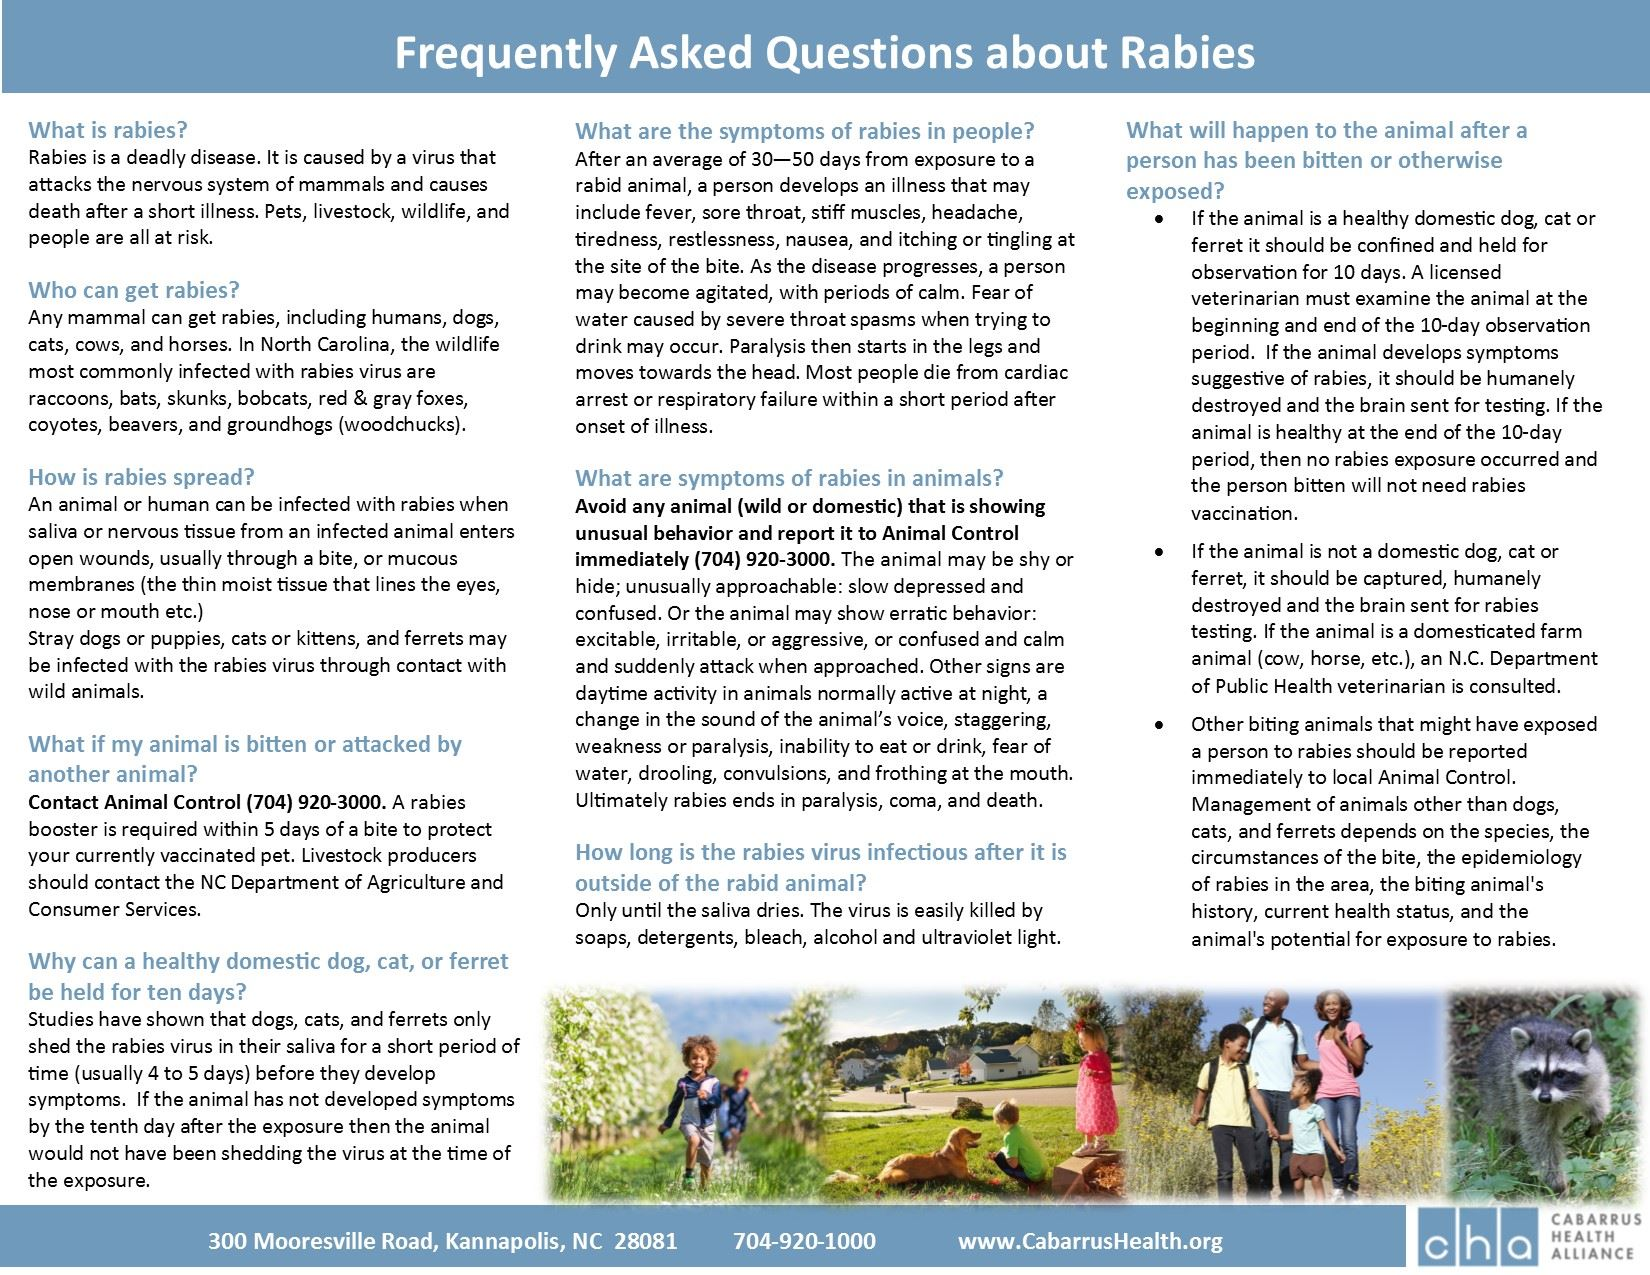 Frequently Asked Questions About Rabies